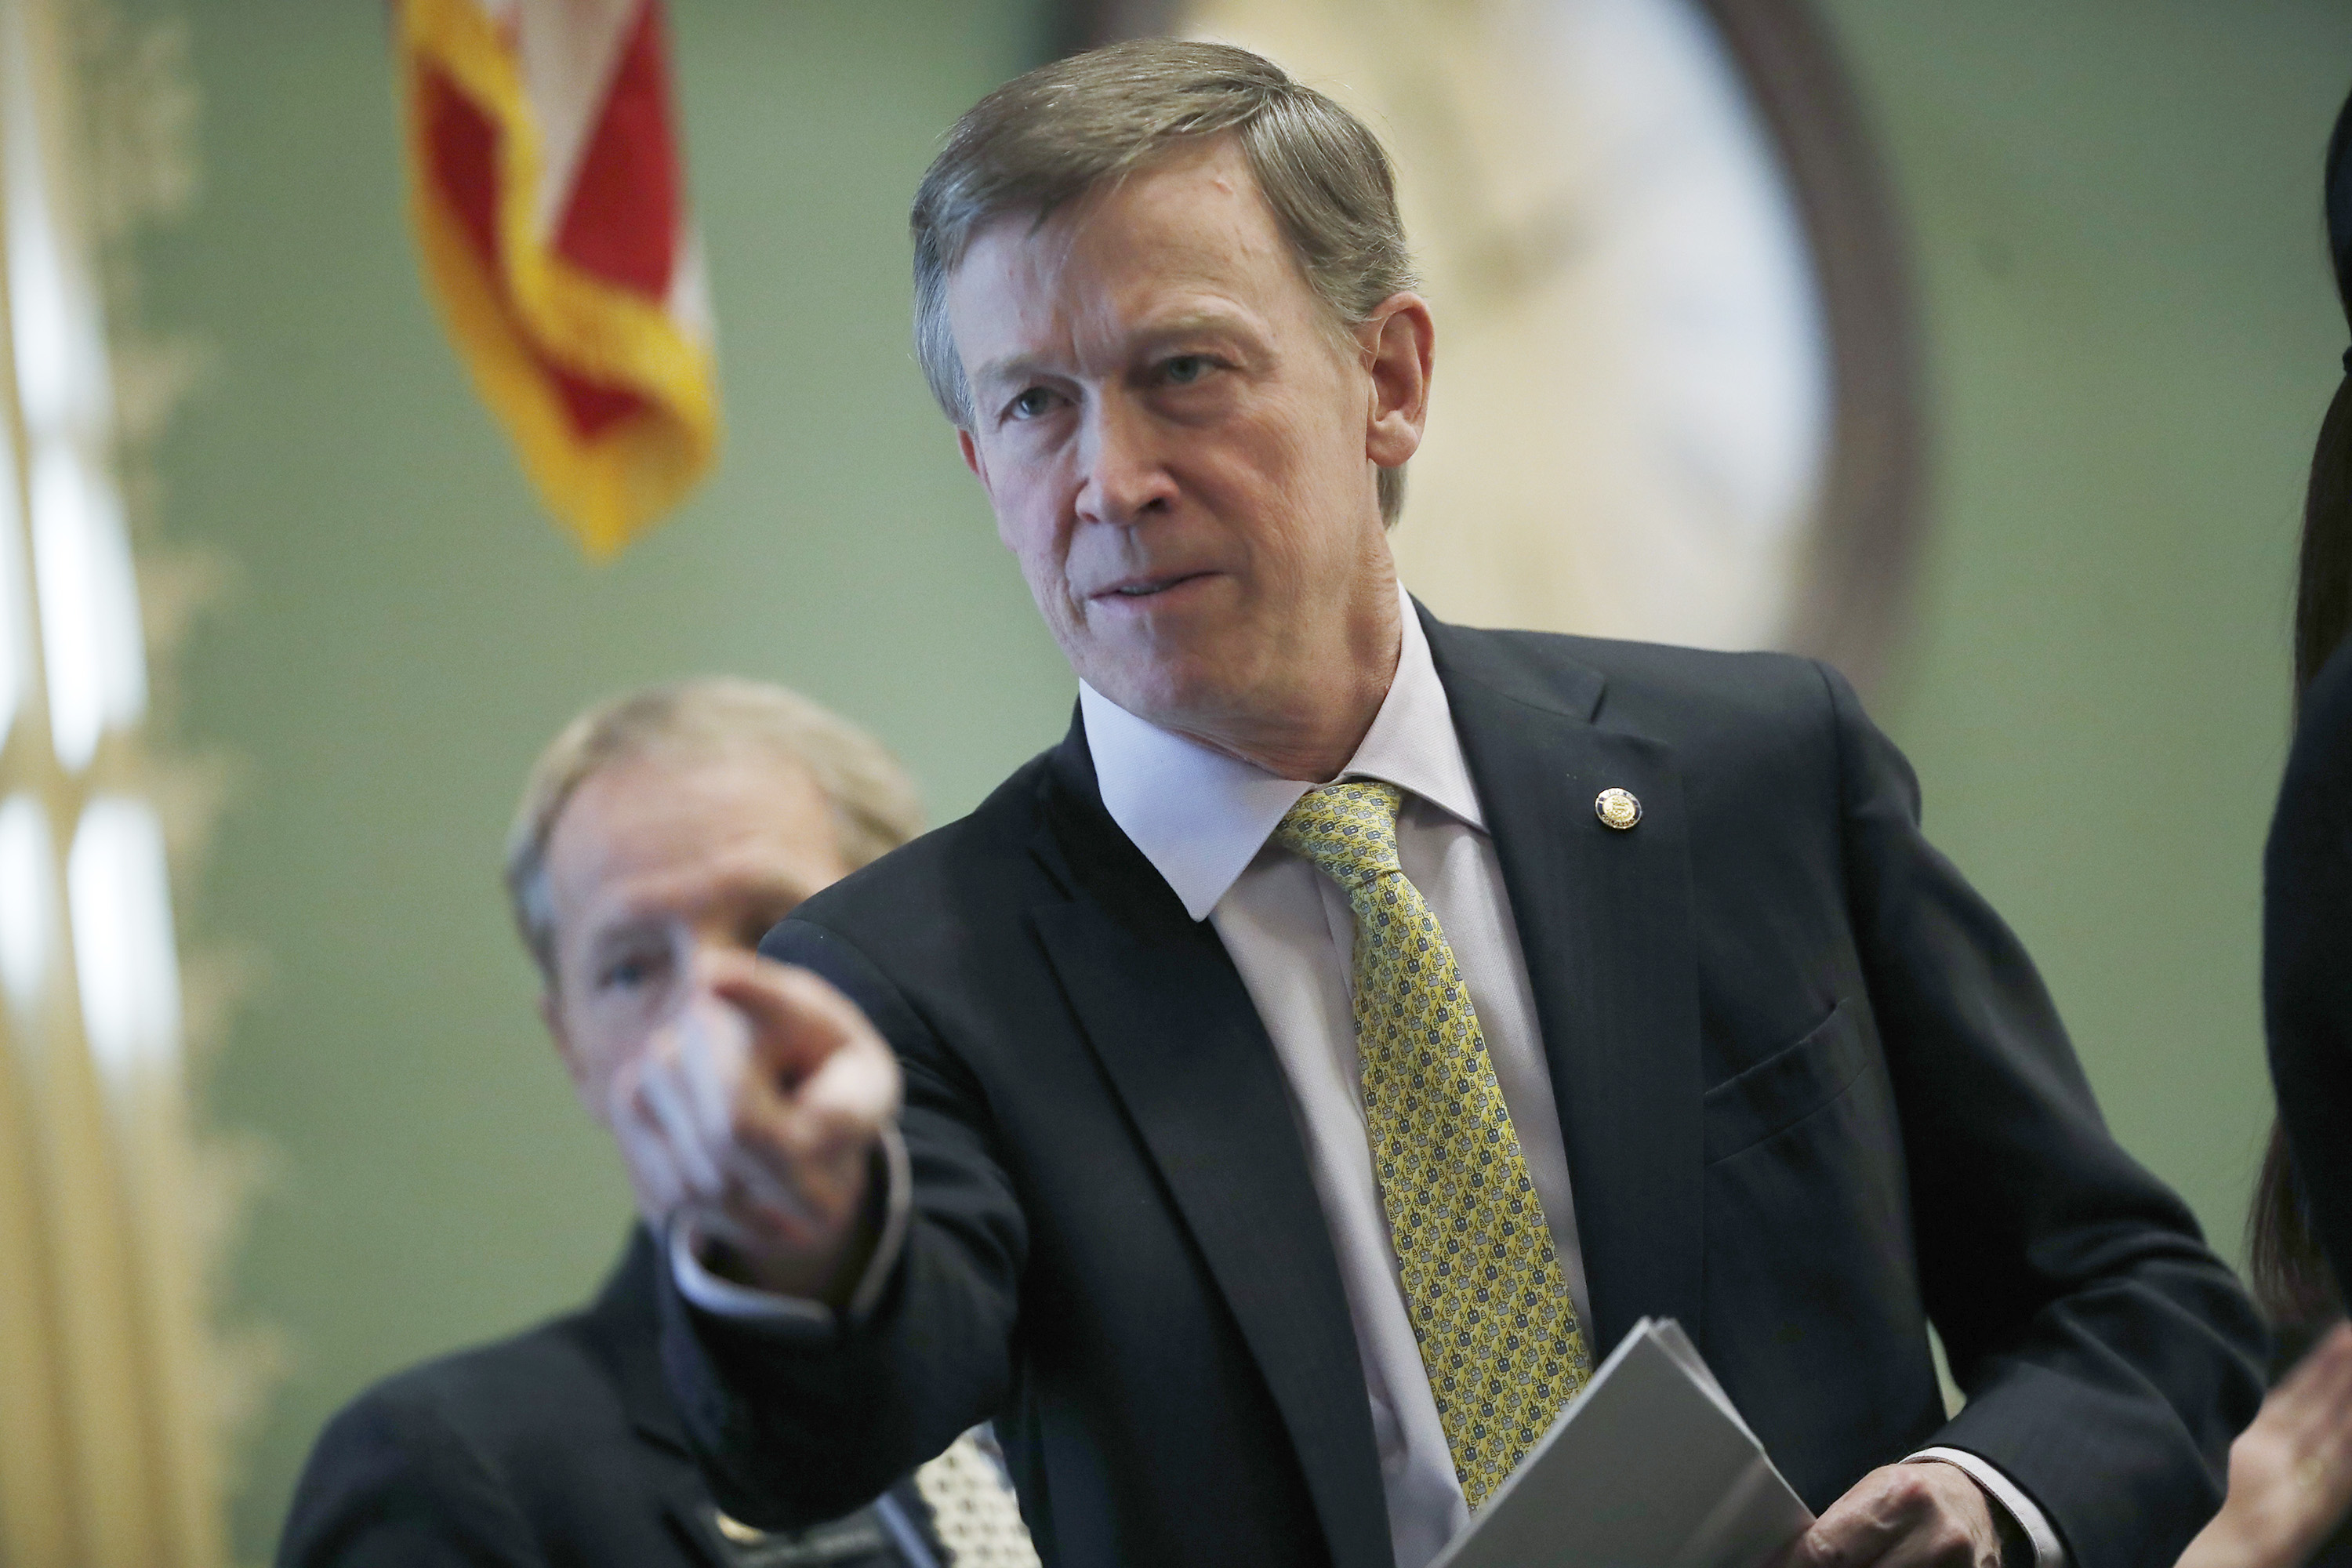 Photo: Hickenlooper, StateOf The State 2018